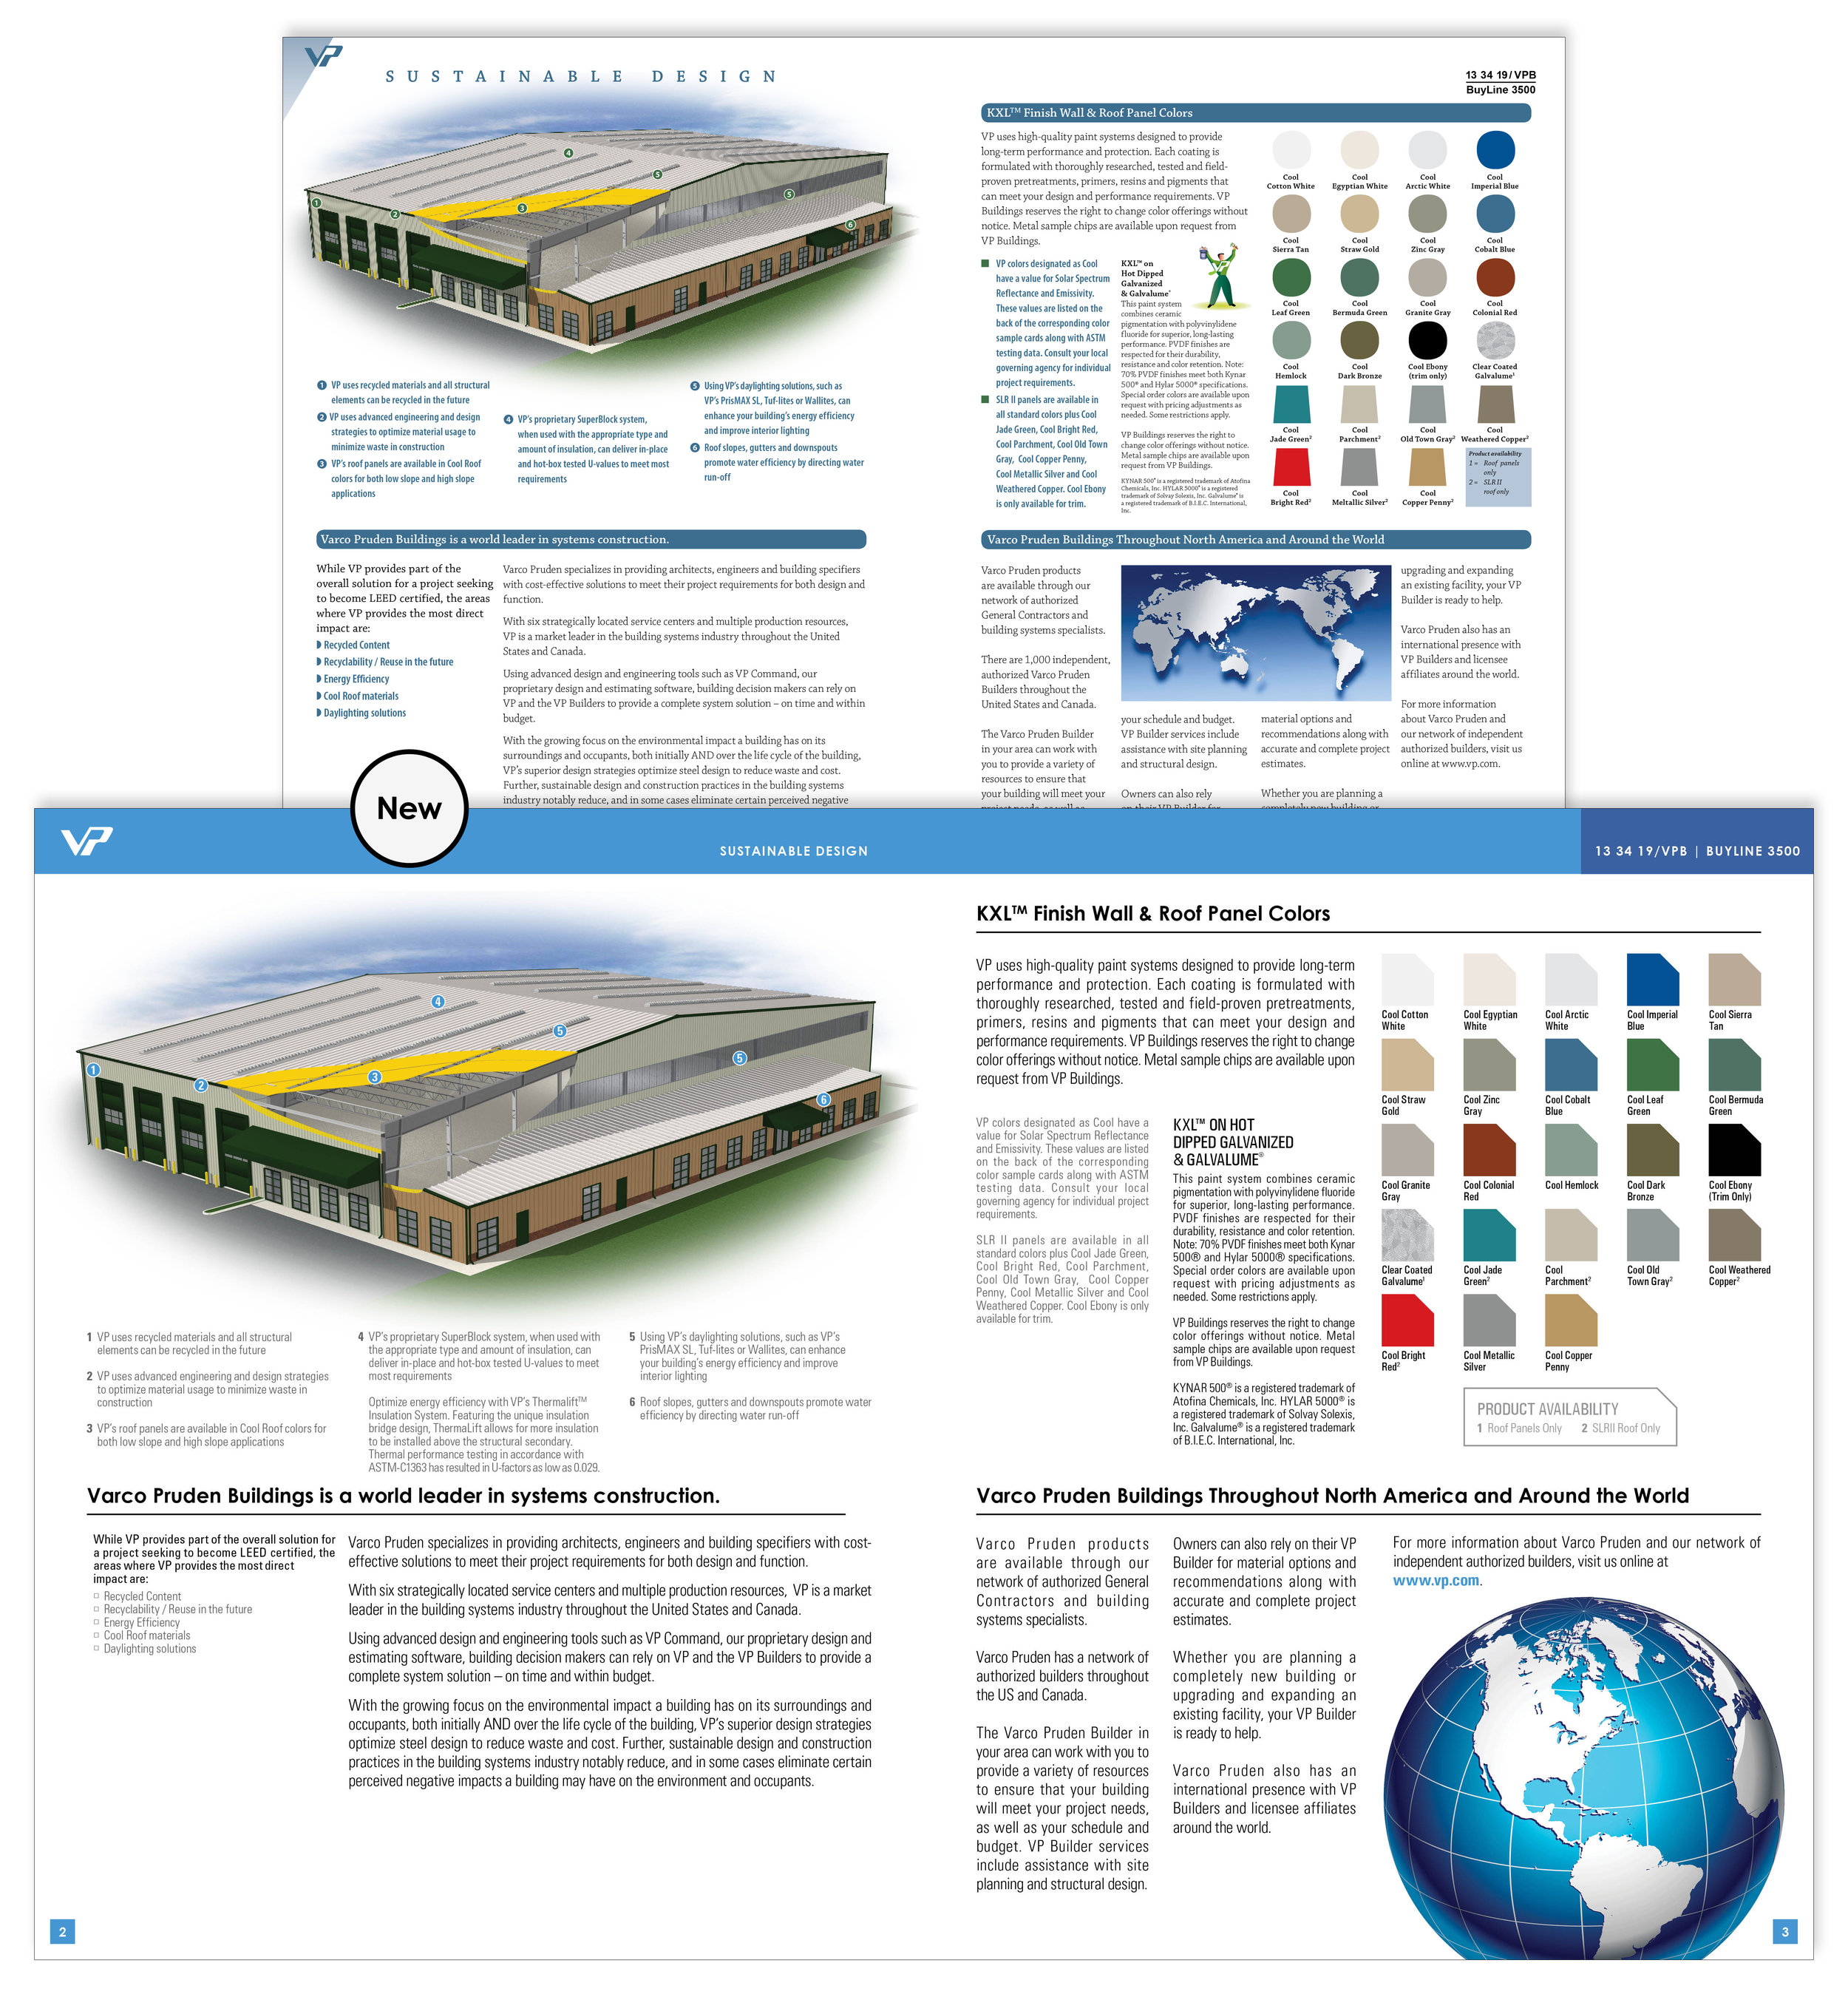 Varco-Pruden_Product-Guide_Print-Design_Before-After_Dreamcapture_Memphis-TN